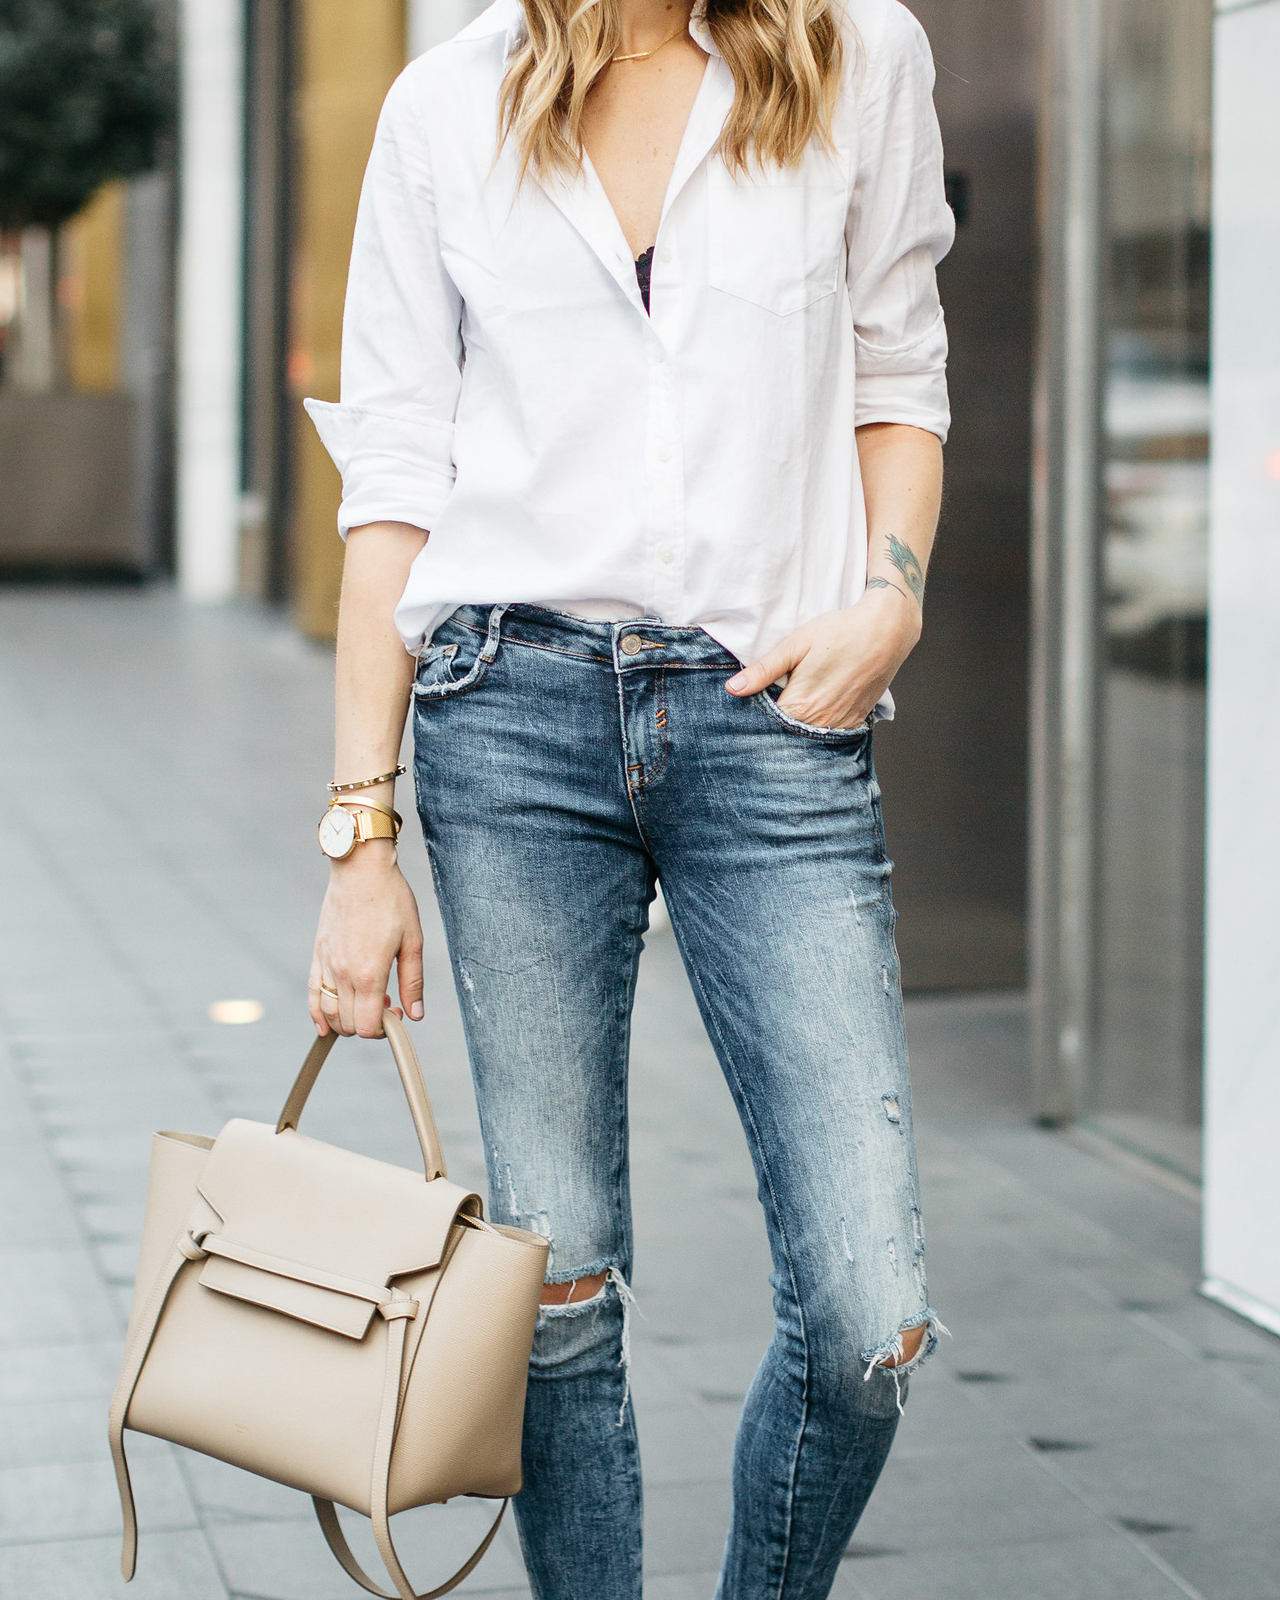 ee9b9e05241 A CHIC WAY TO WEAR A WHITE BUTTON-DOWN SHIRT